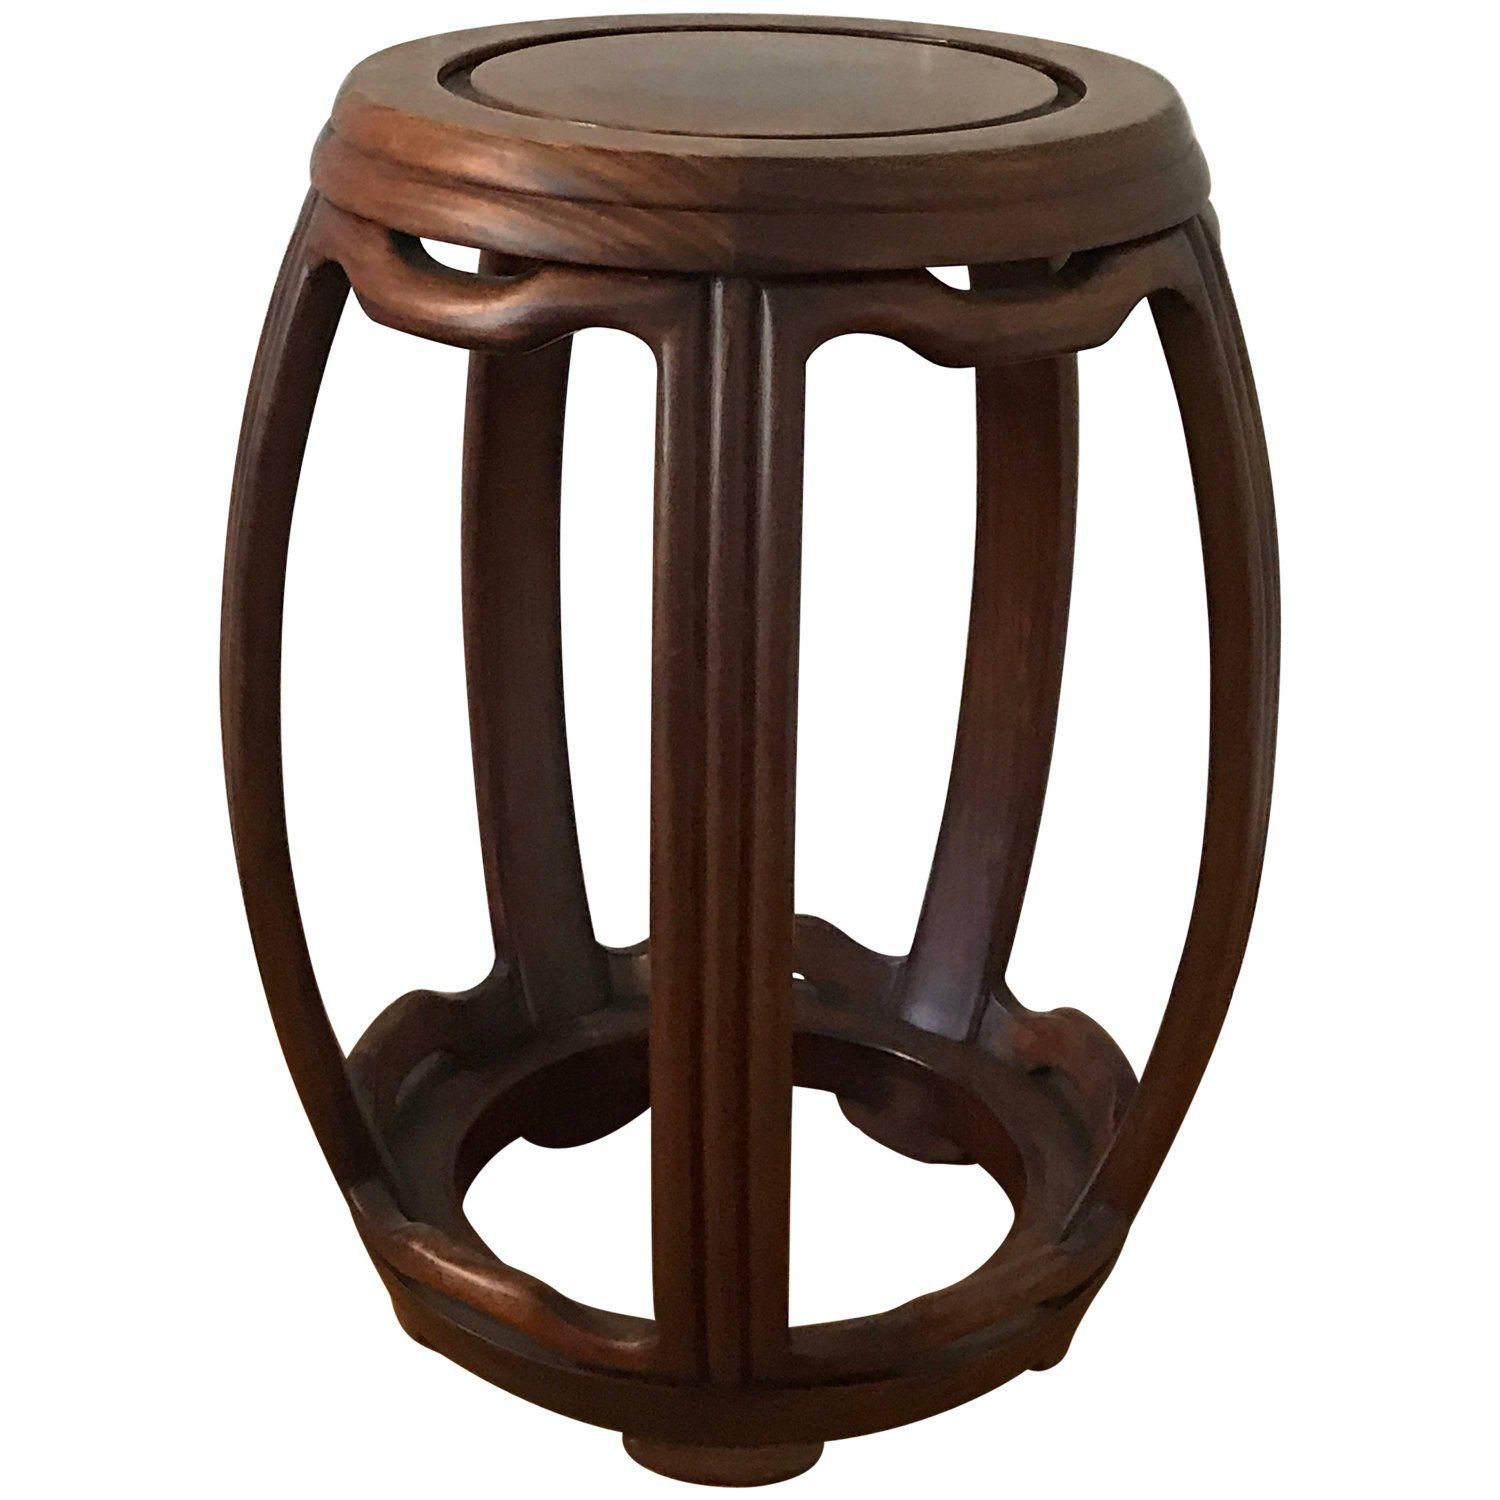 Fabulous 1950S Ming Style Wooden Garden Stool My 1Stdibs Favorites Alphanode Cool Chair Designs And Ideas Alphanodeonline